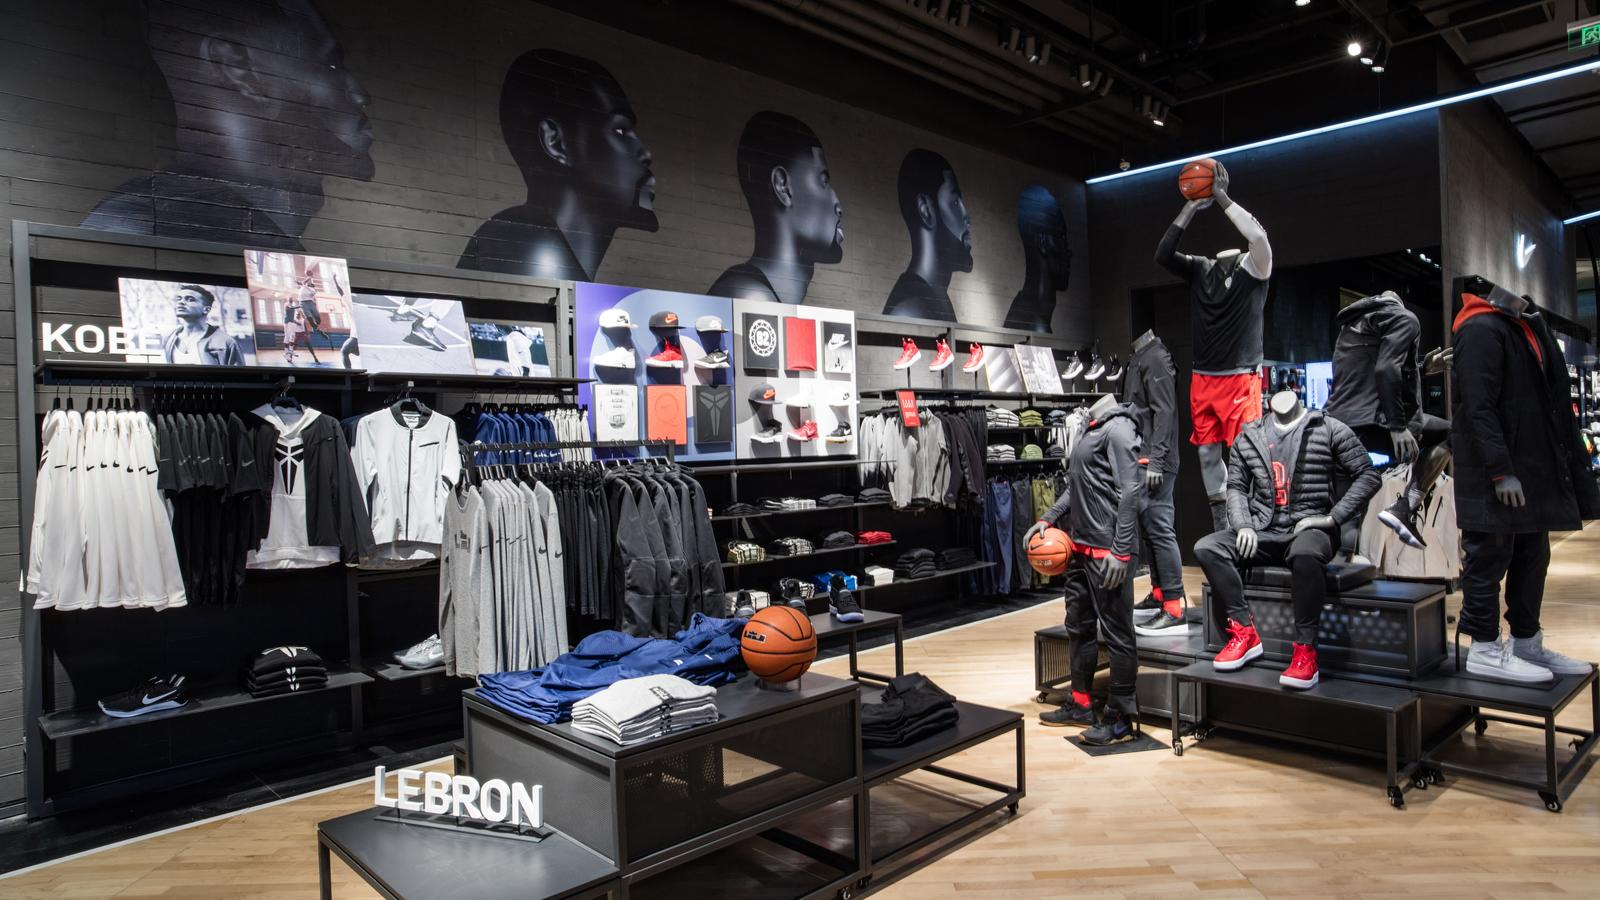 Jordan Experience First The Nikeamp; In LookInside Store Basketball CoWxrdeB